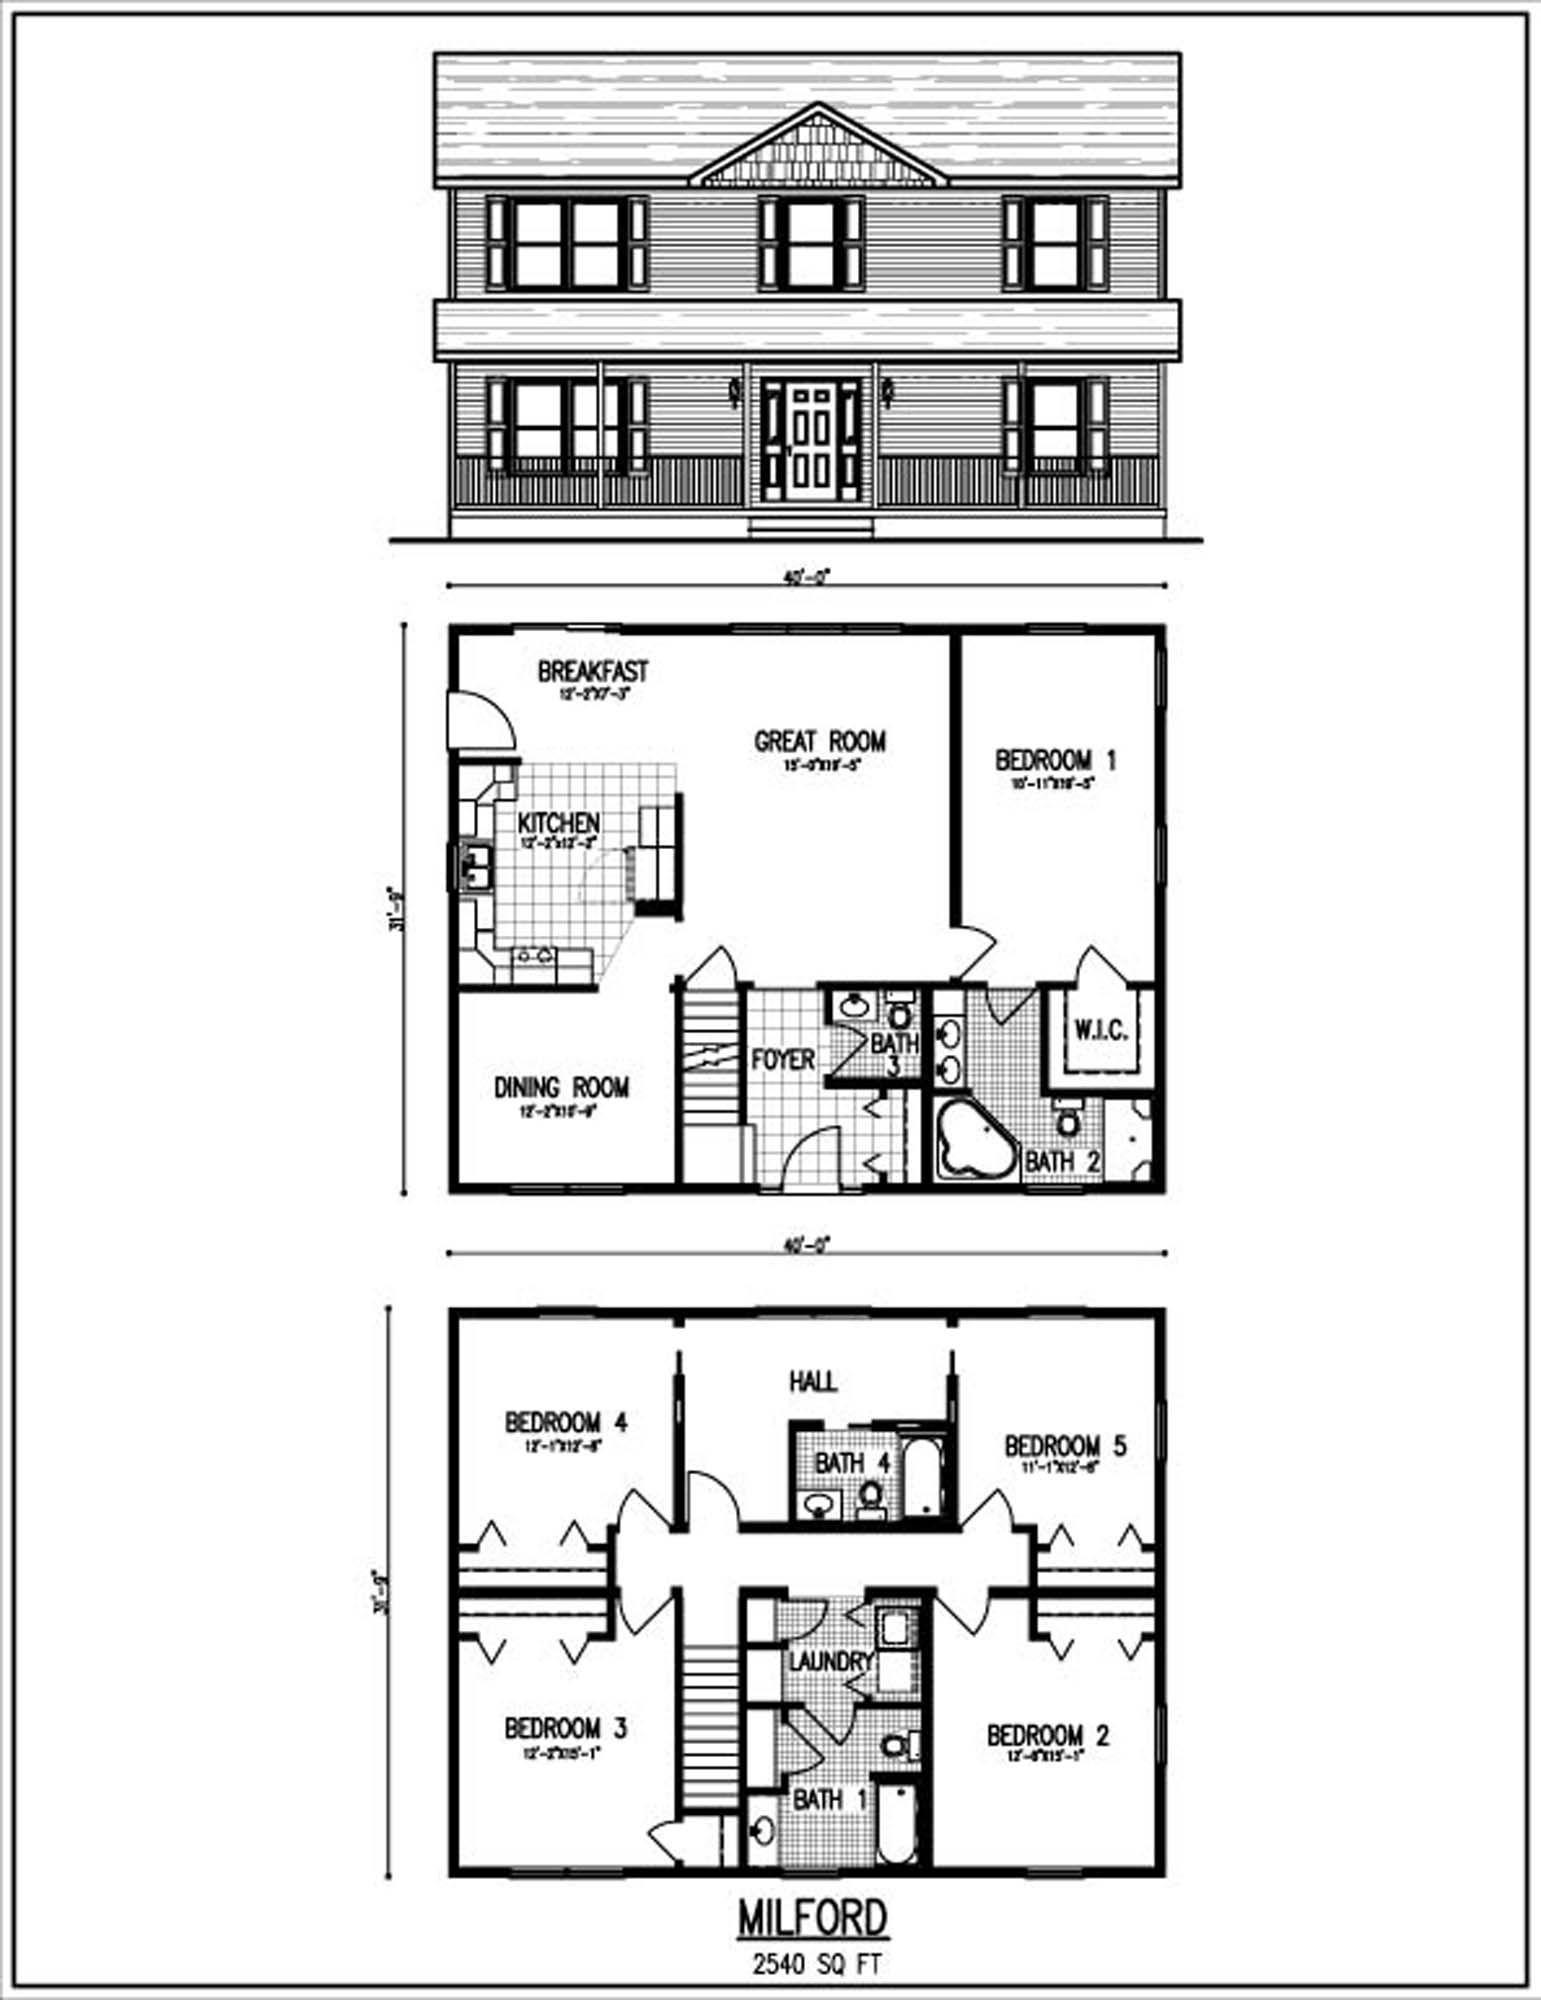 Beautiful 2 story house plans with upper level floor plan mewe floor plans pinterest Two story house plans